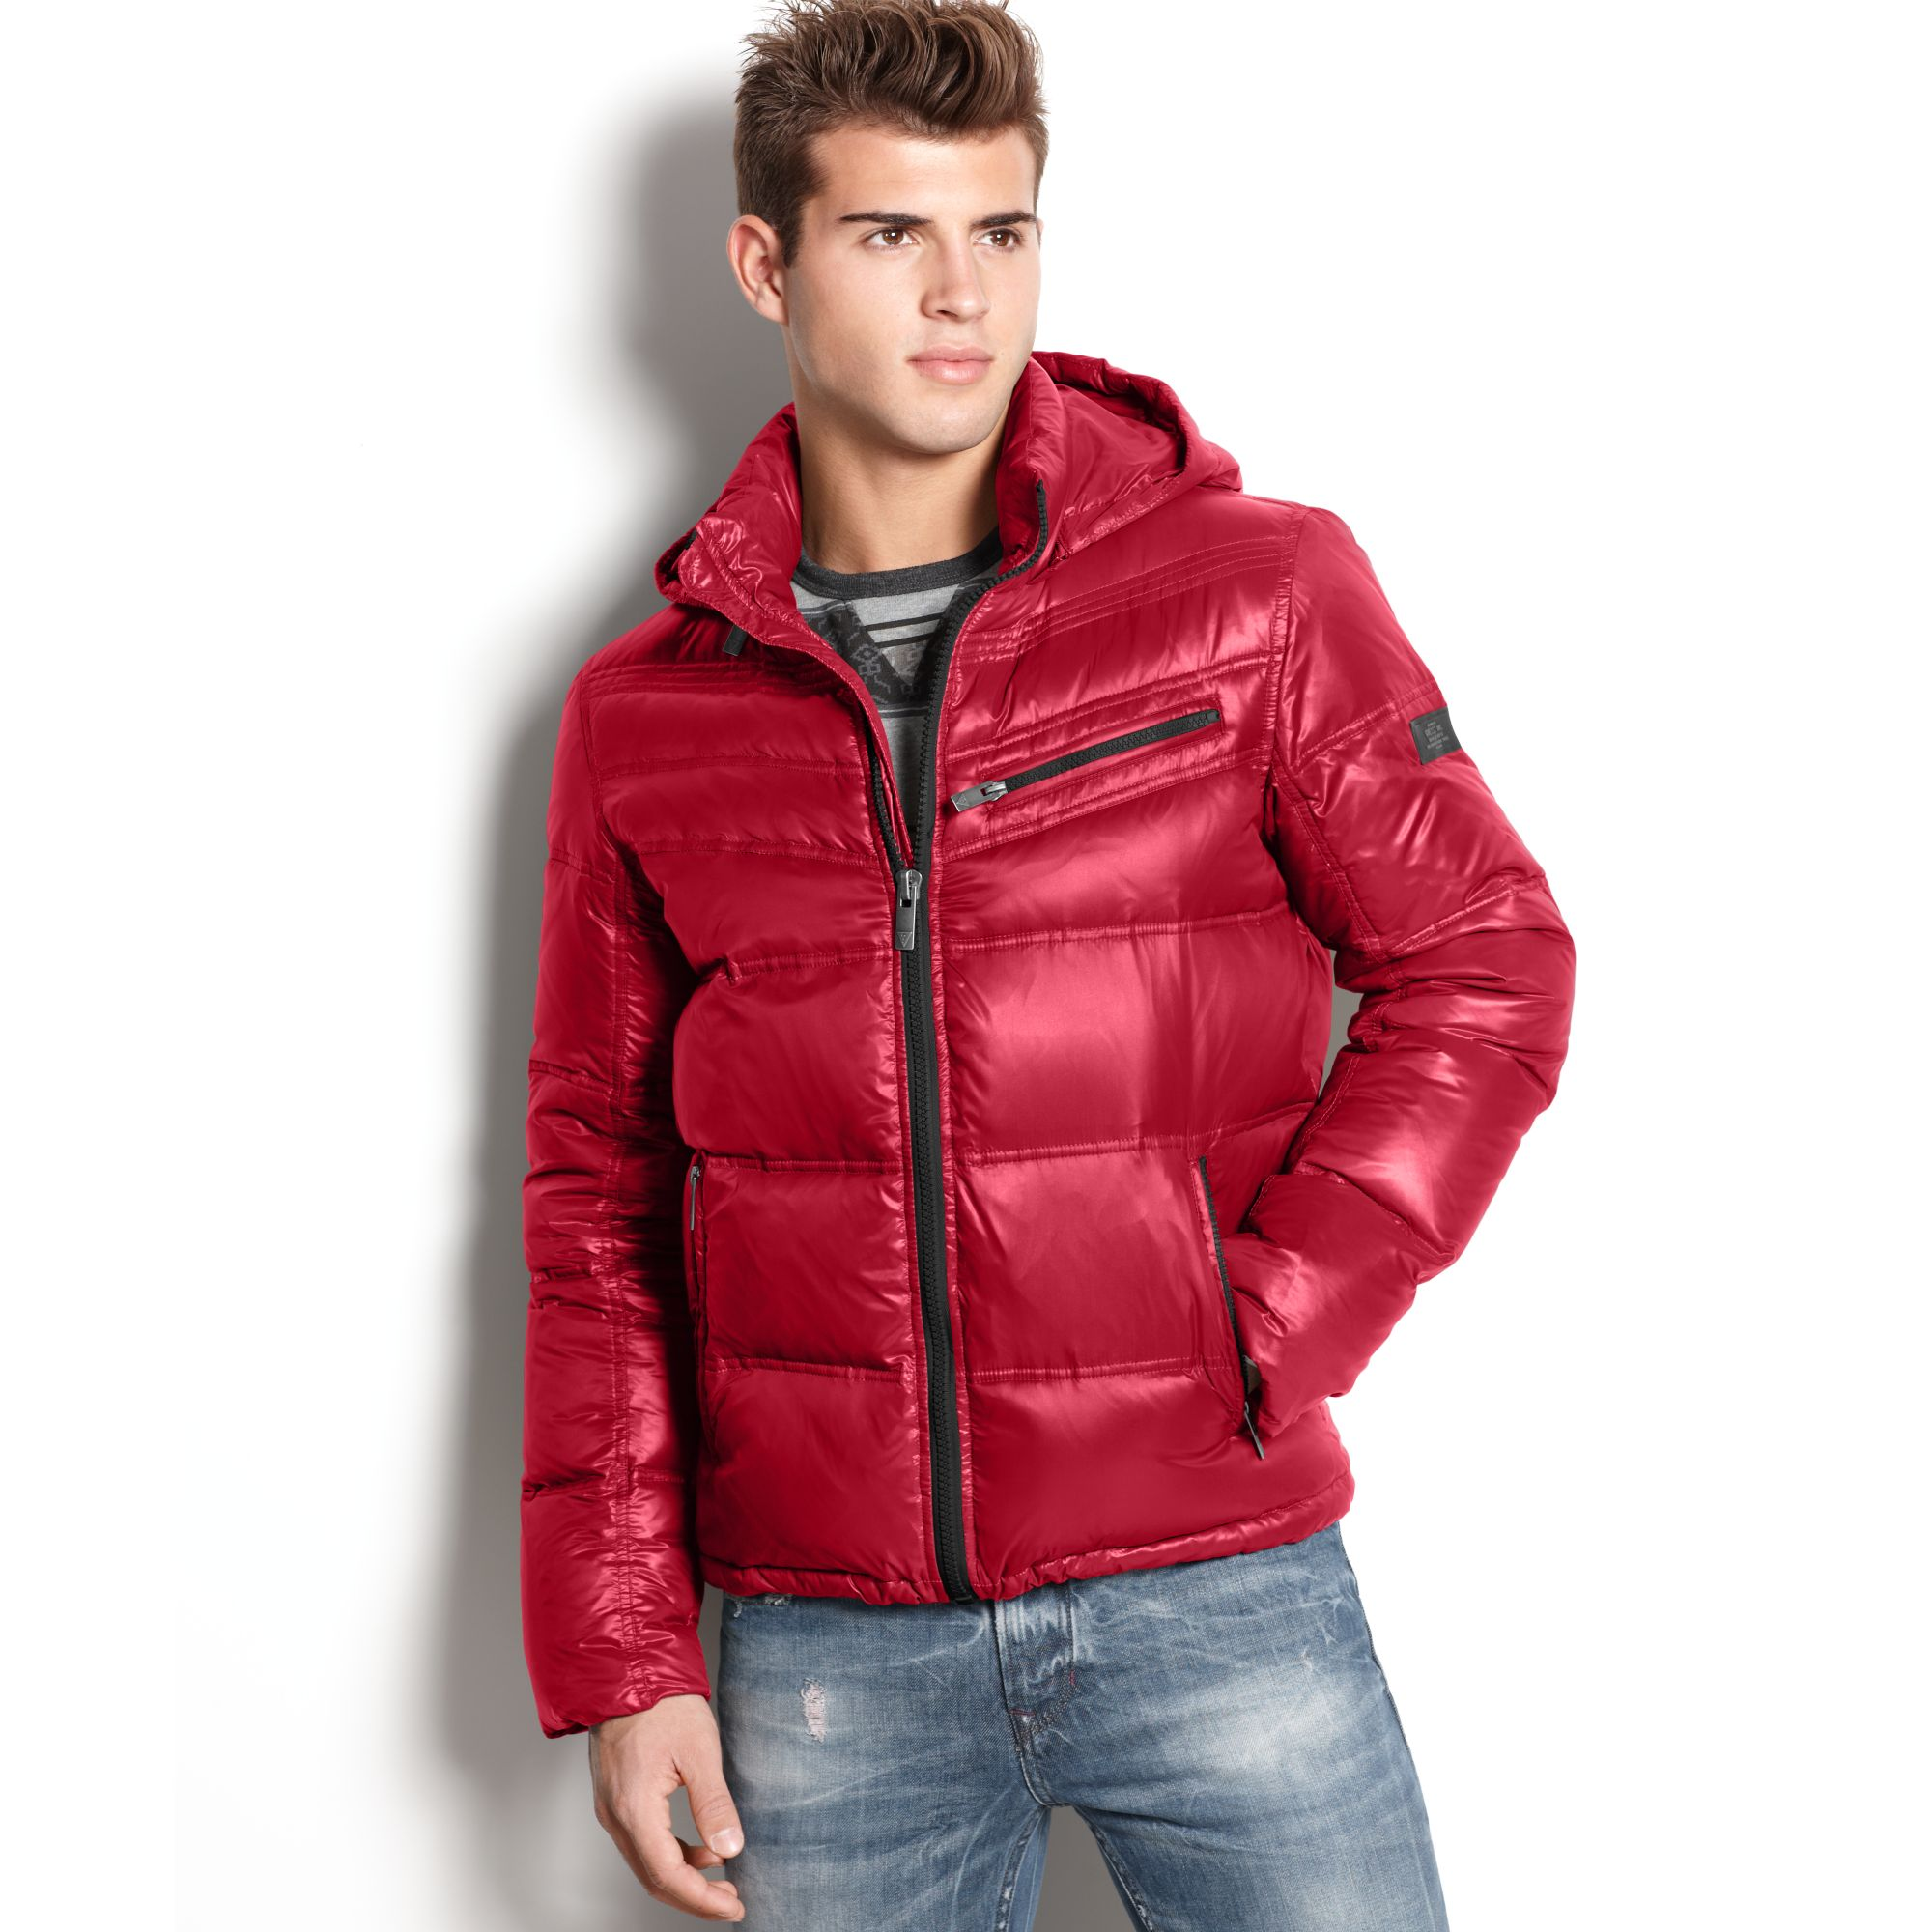 Guess Jacket Chrome Hooded Quilted Puffer In Red For Men